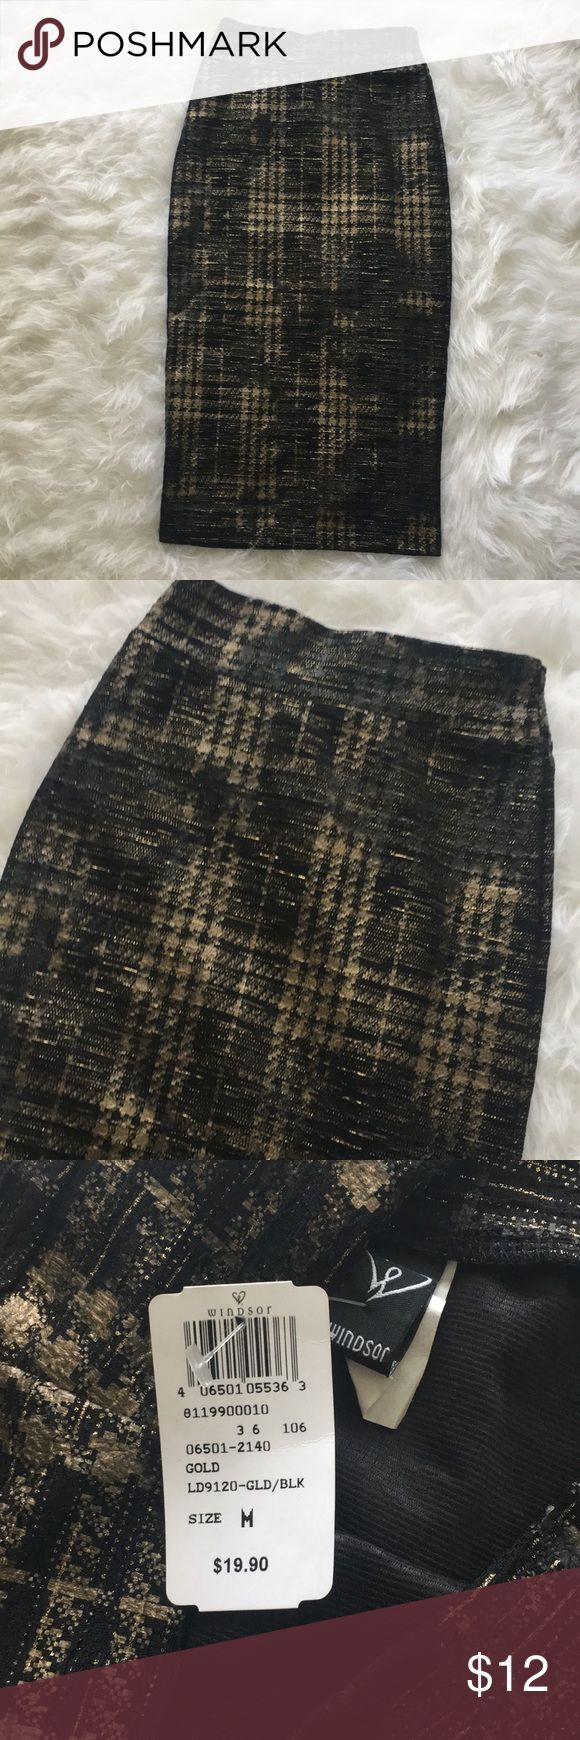 Black and gold Pencil Skirt Black and gold Pencil Skirt from Windsor. 28.5 inches in length. Brand new. Skirts Pencil